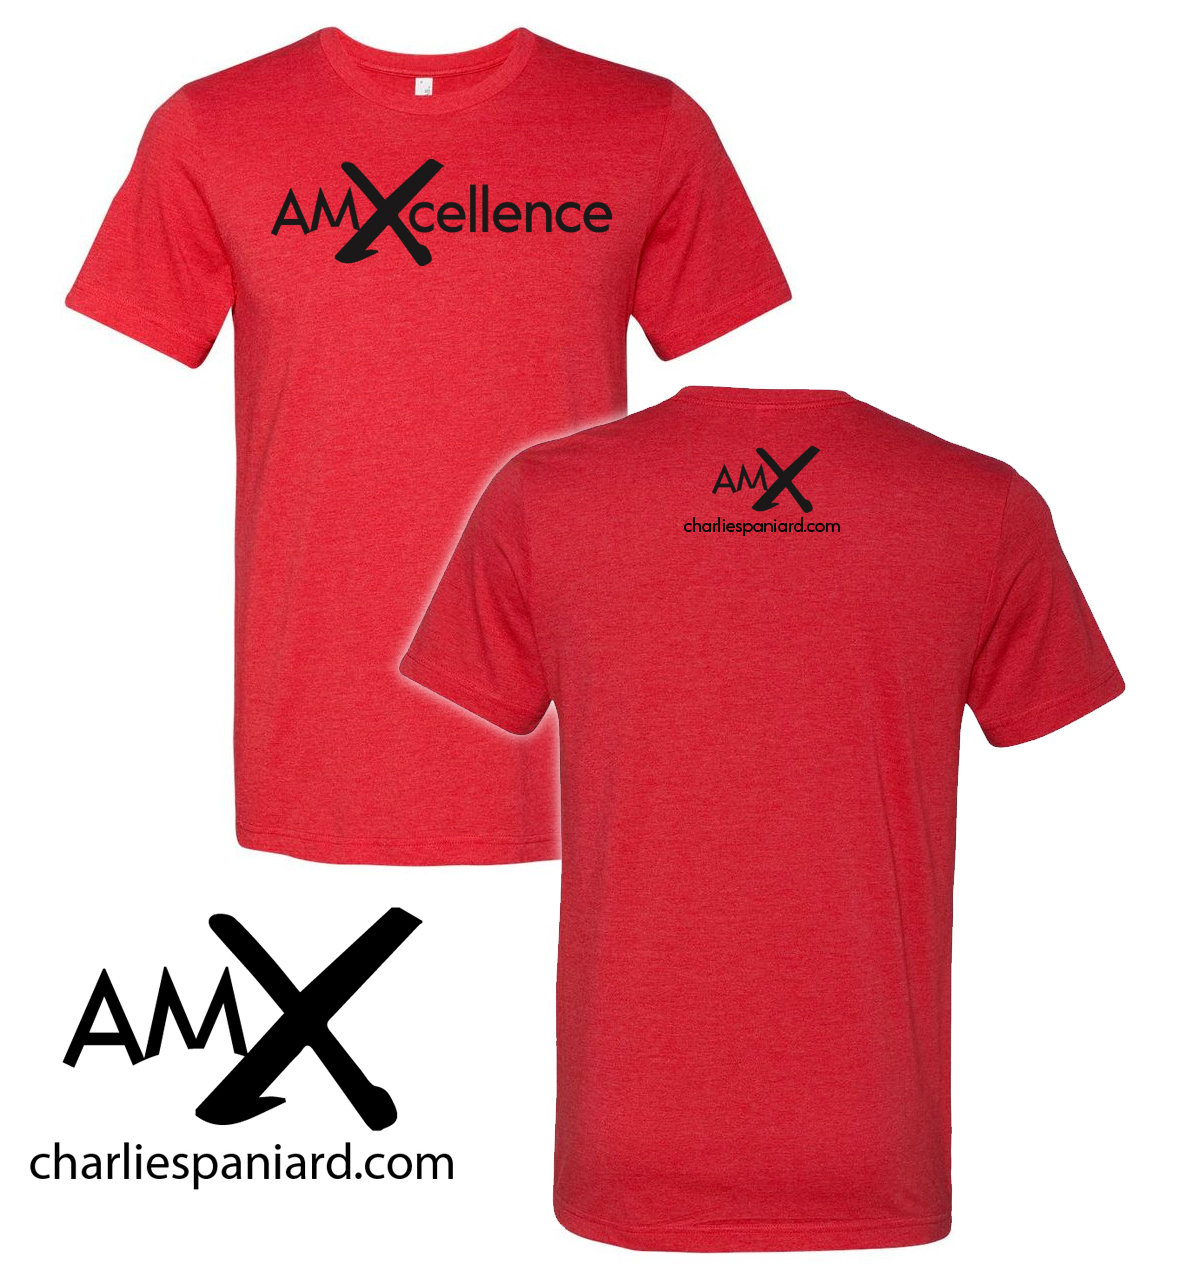 AM Excellence (AMX) Flagship T-shirt - Heather Red 01